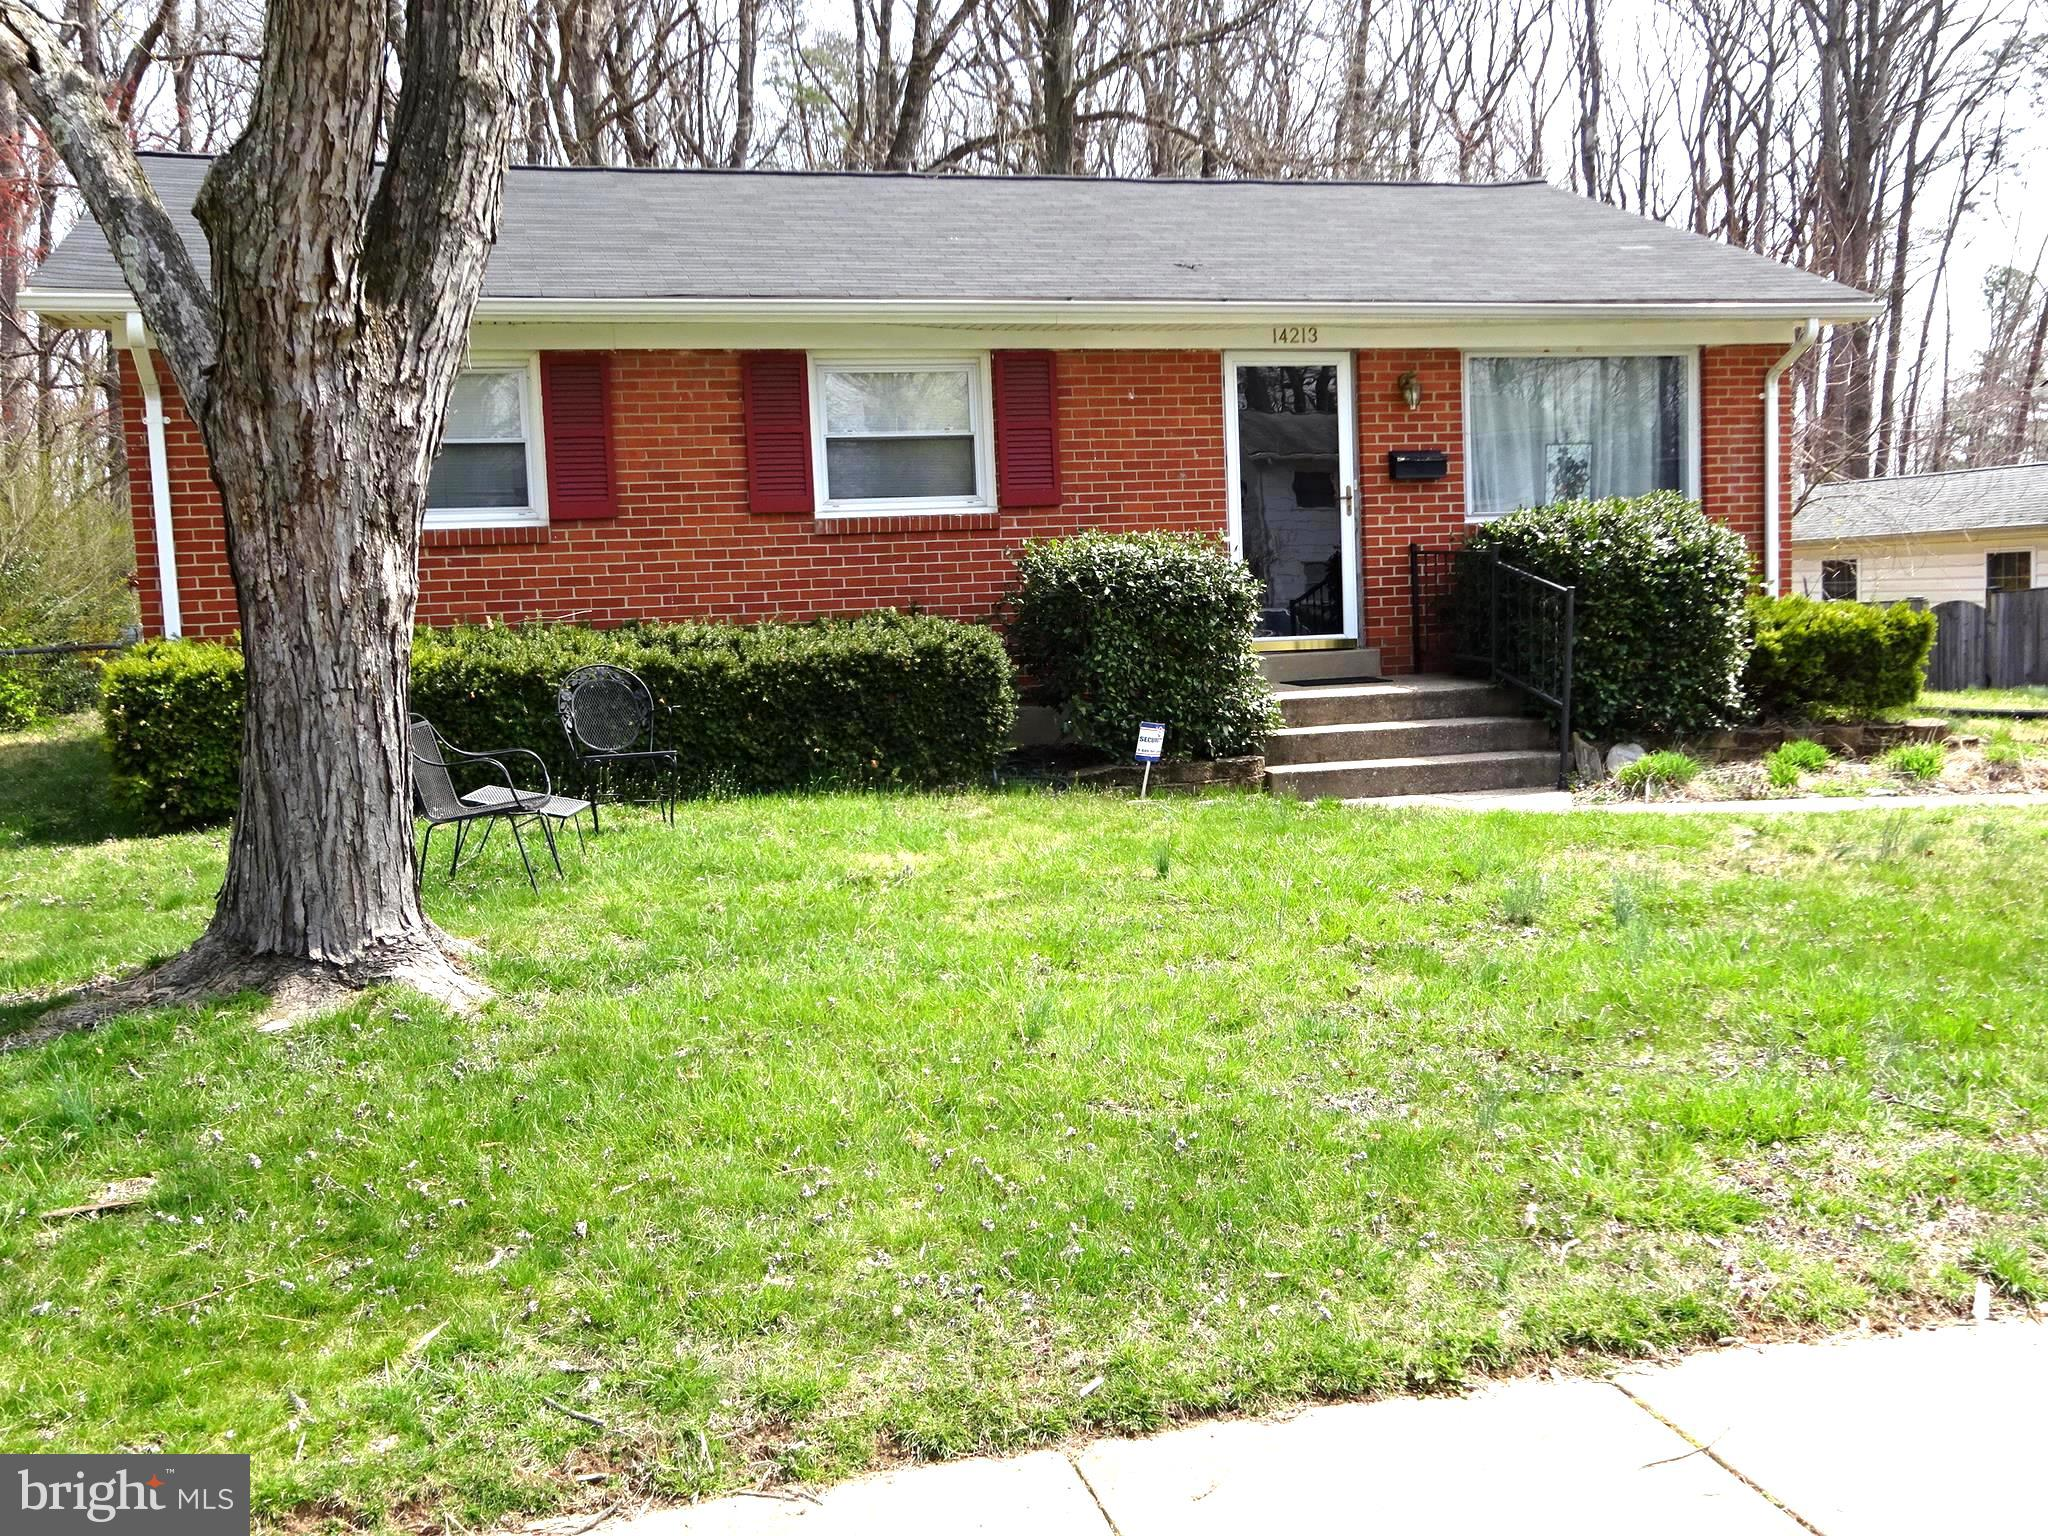 SECOND PRICE REDUCTION__Brick rambler with large family room addition, brick fireplace, newer roof, newer furnace, newer stove and refrigerator, 3 sheds,  fenced rear yard, separate laundry room, vent work & duct work installed for central air, backs to woods, gas log insert. ll Reasonable offers considered